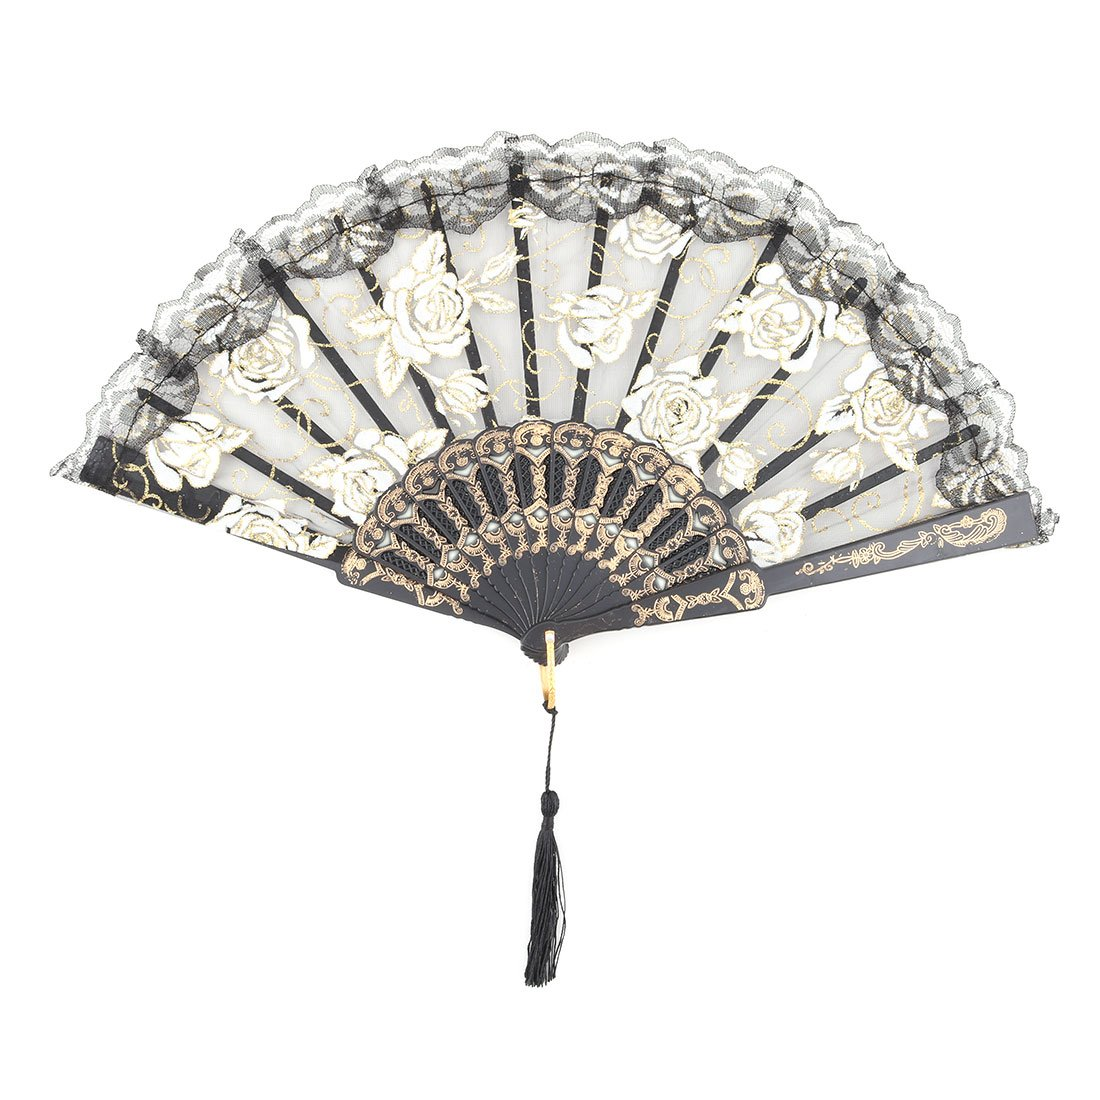 uxcell Plastic Flower Printed Family Tassel Decor Vintage Style Hand Fan 24cm Length US-SA-AJD-304665